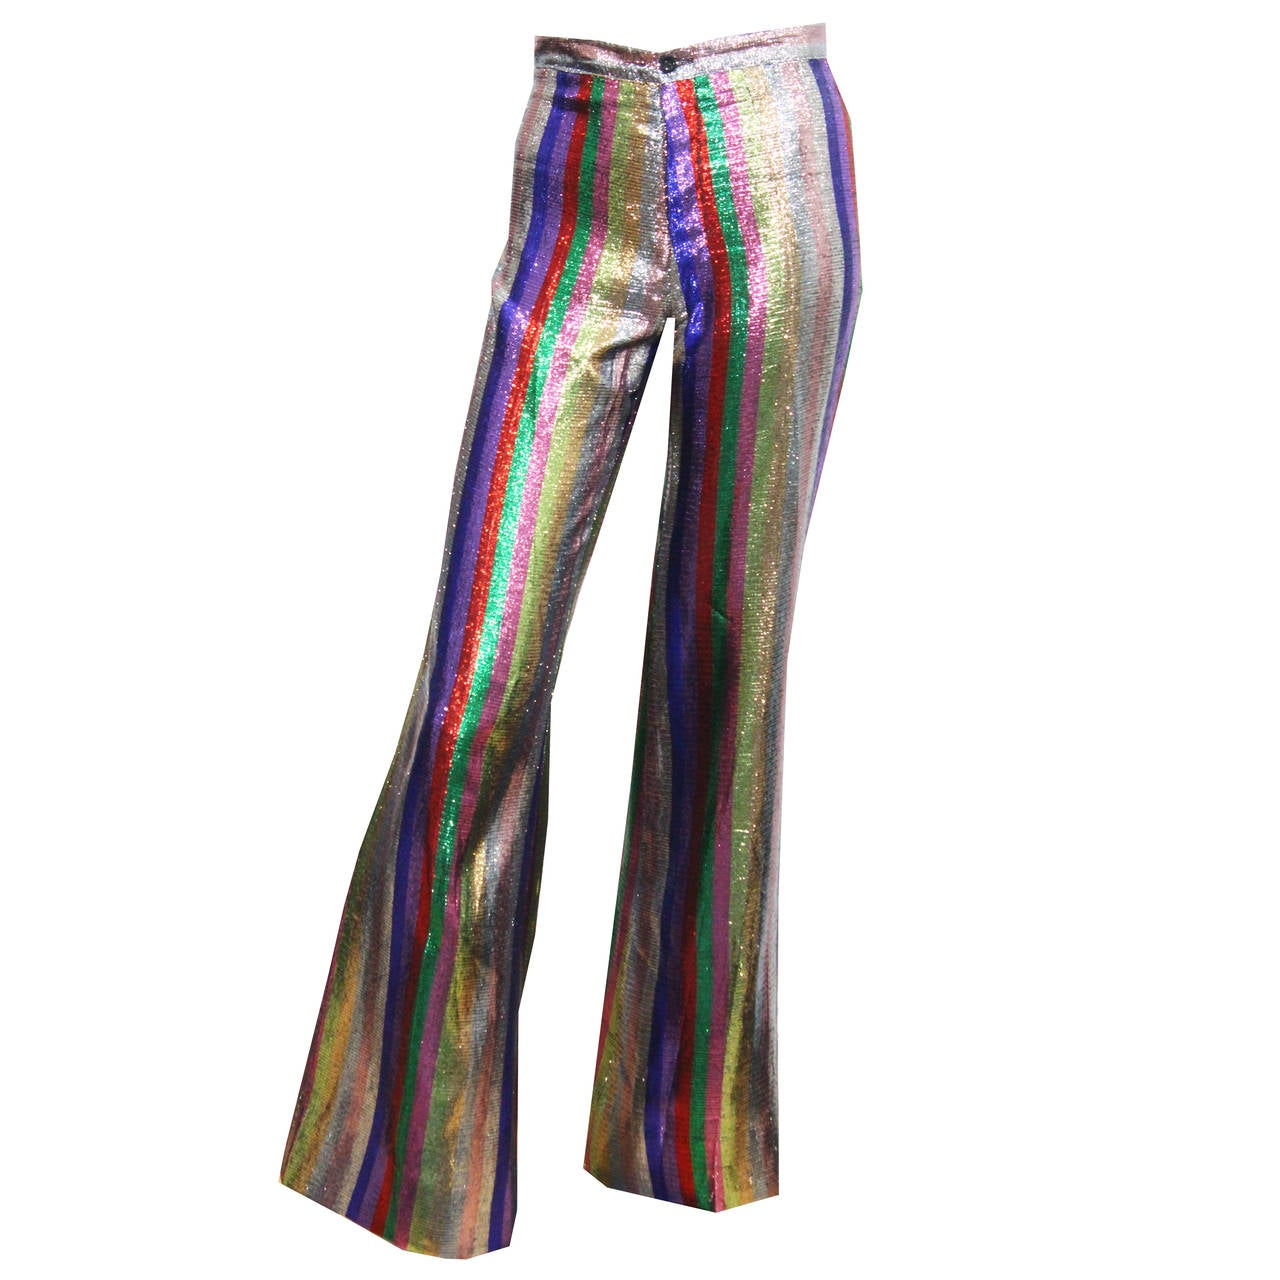 Late 1960s Metallic Flared Pants From The Alkasura Boutique, Kings Road, London 1